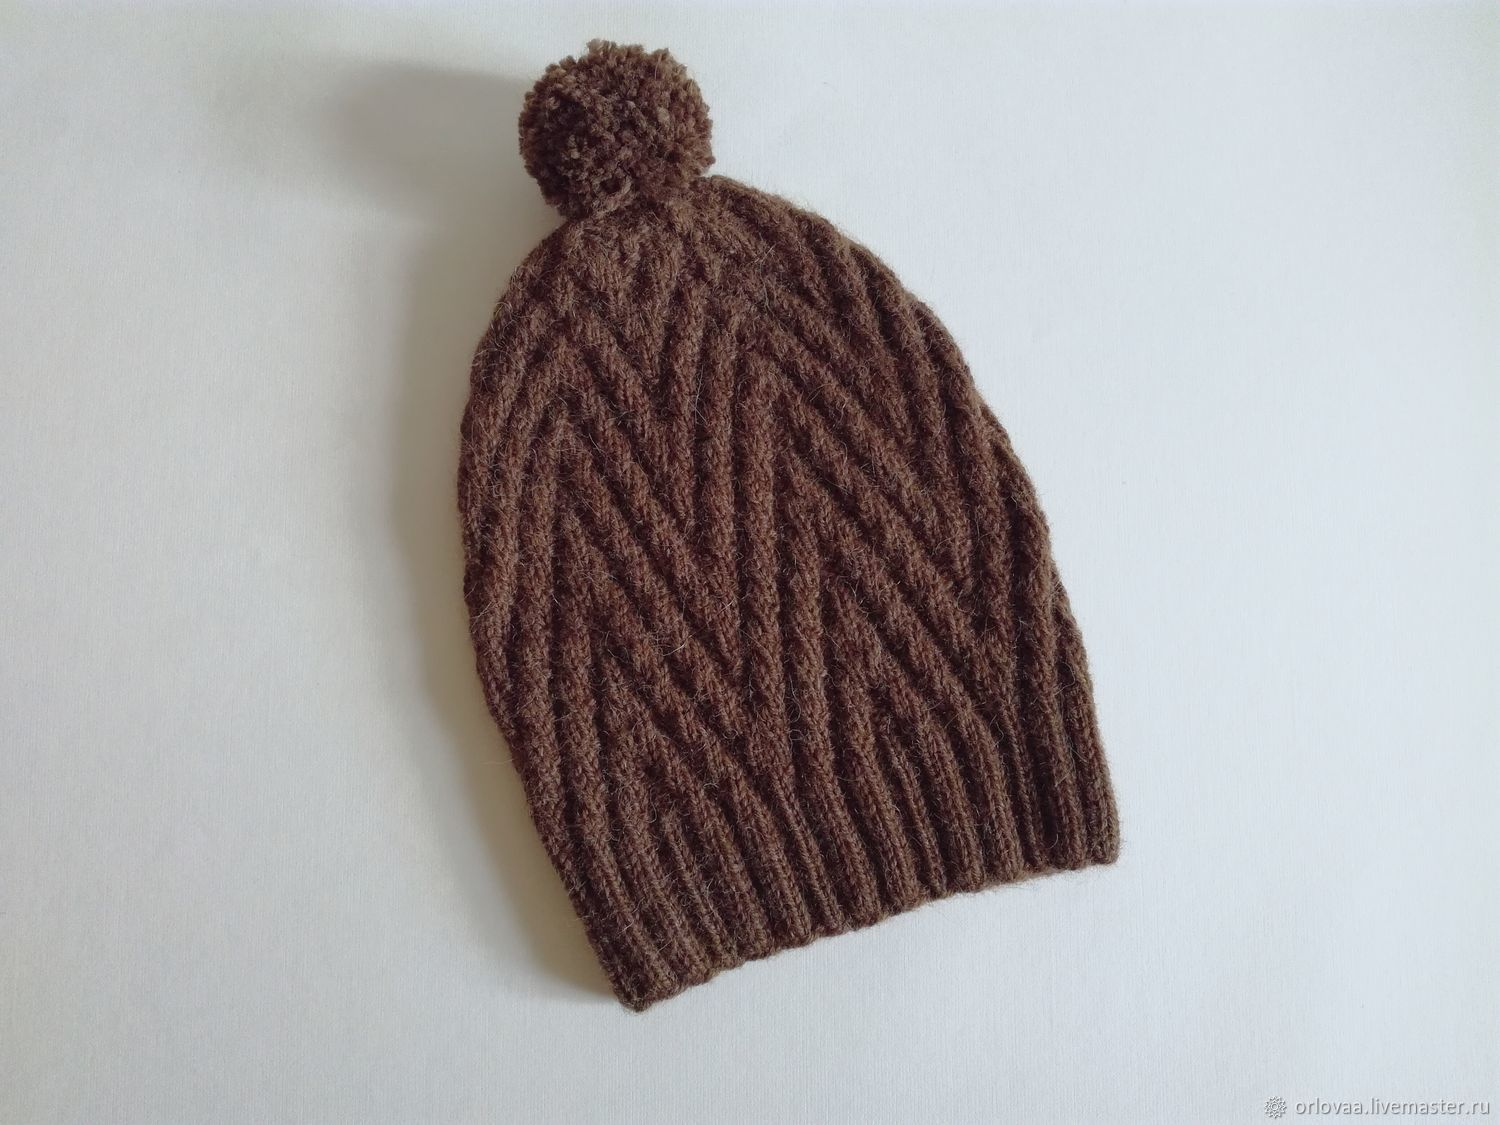 Knitted hat made of wool with Alpaca 'brown', Caps, Moscow,  Фото №1